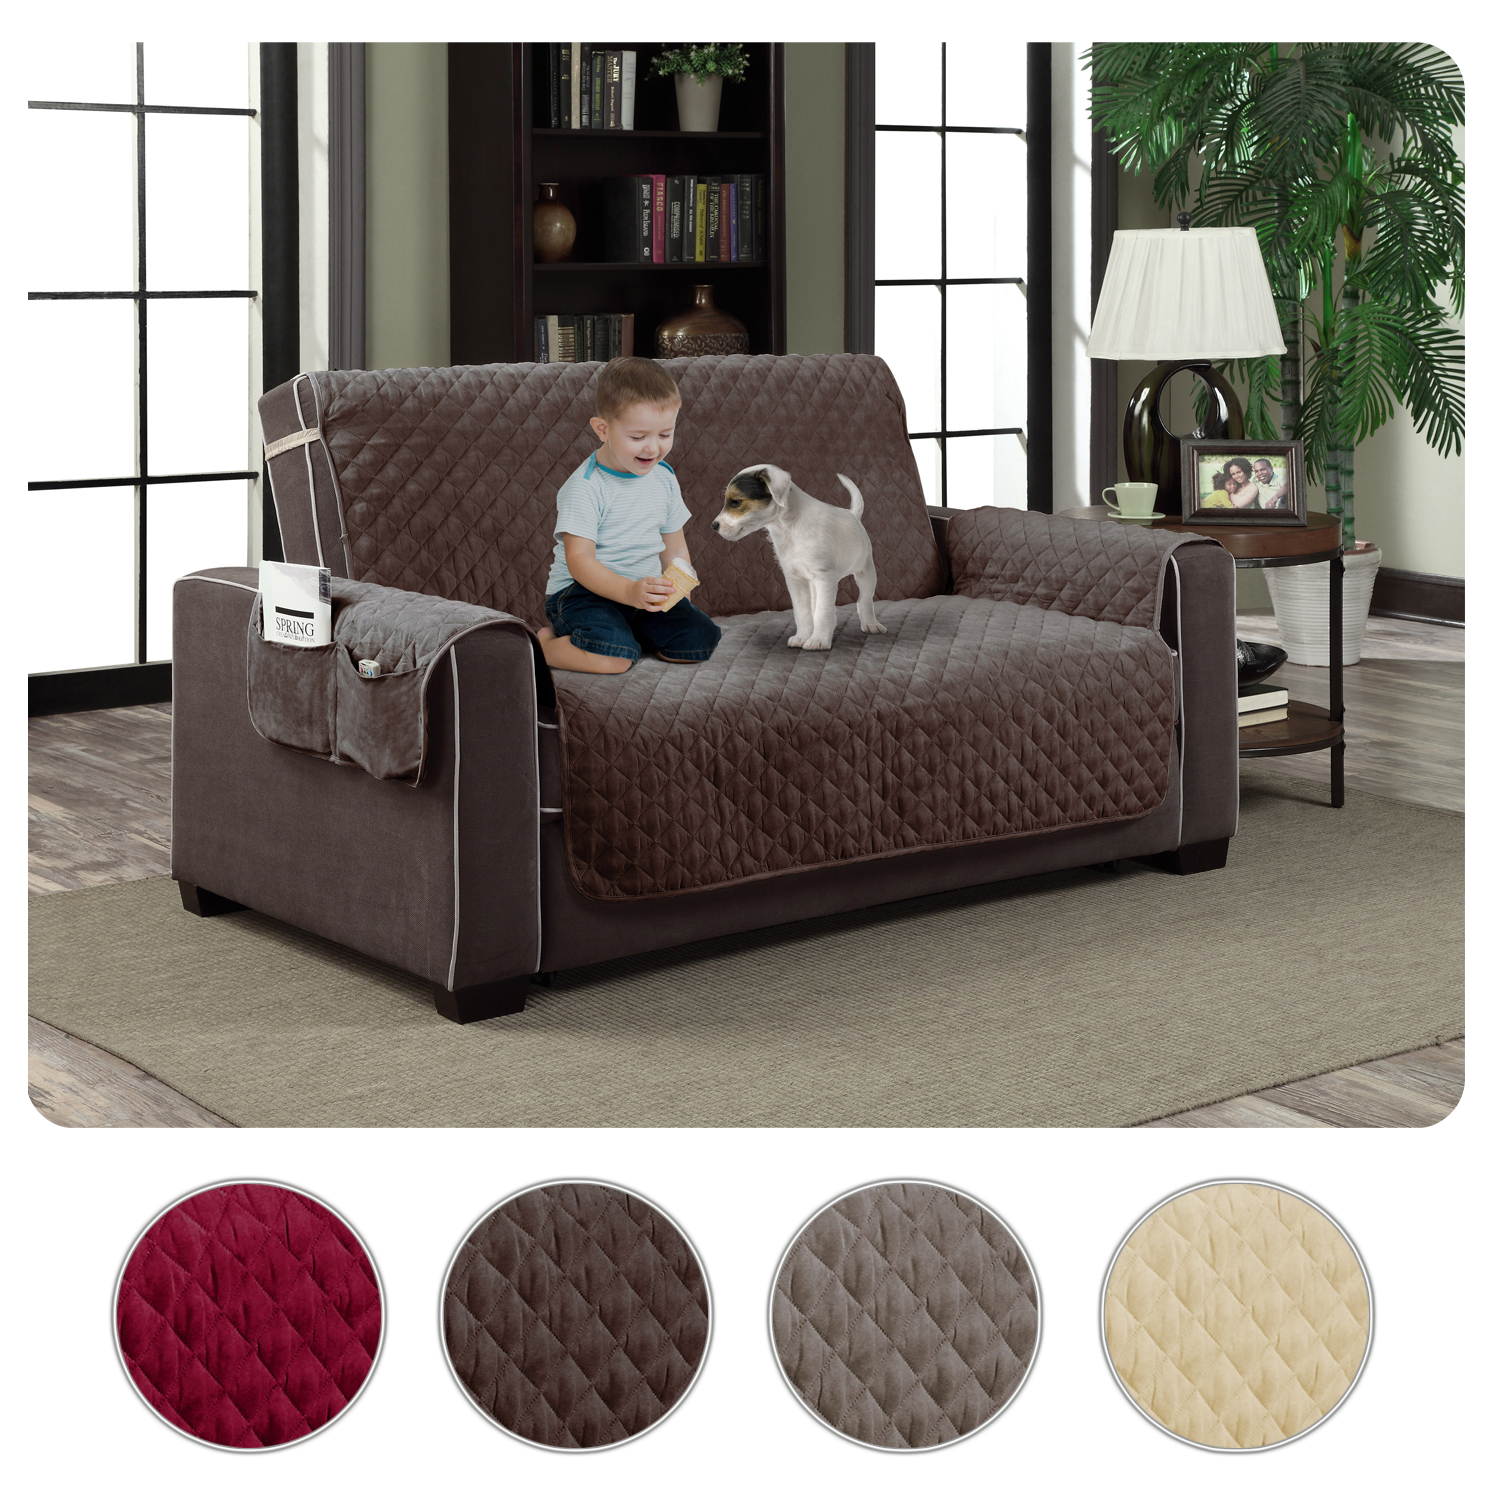 Micro Suede Slipcover Pockets Pet Dog Couch Furniture Protector